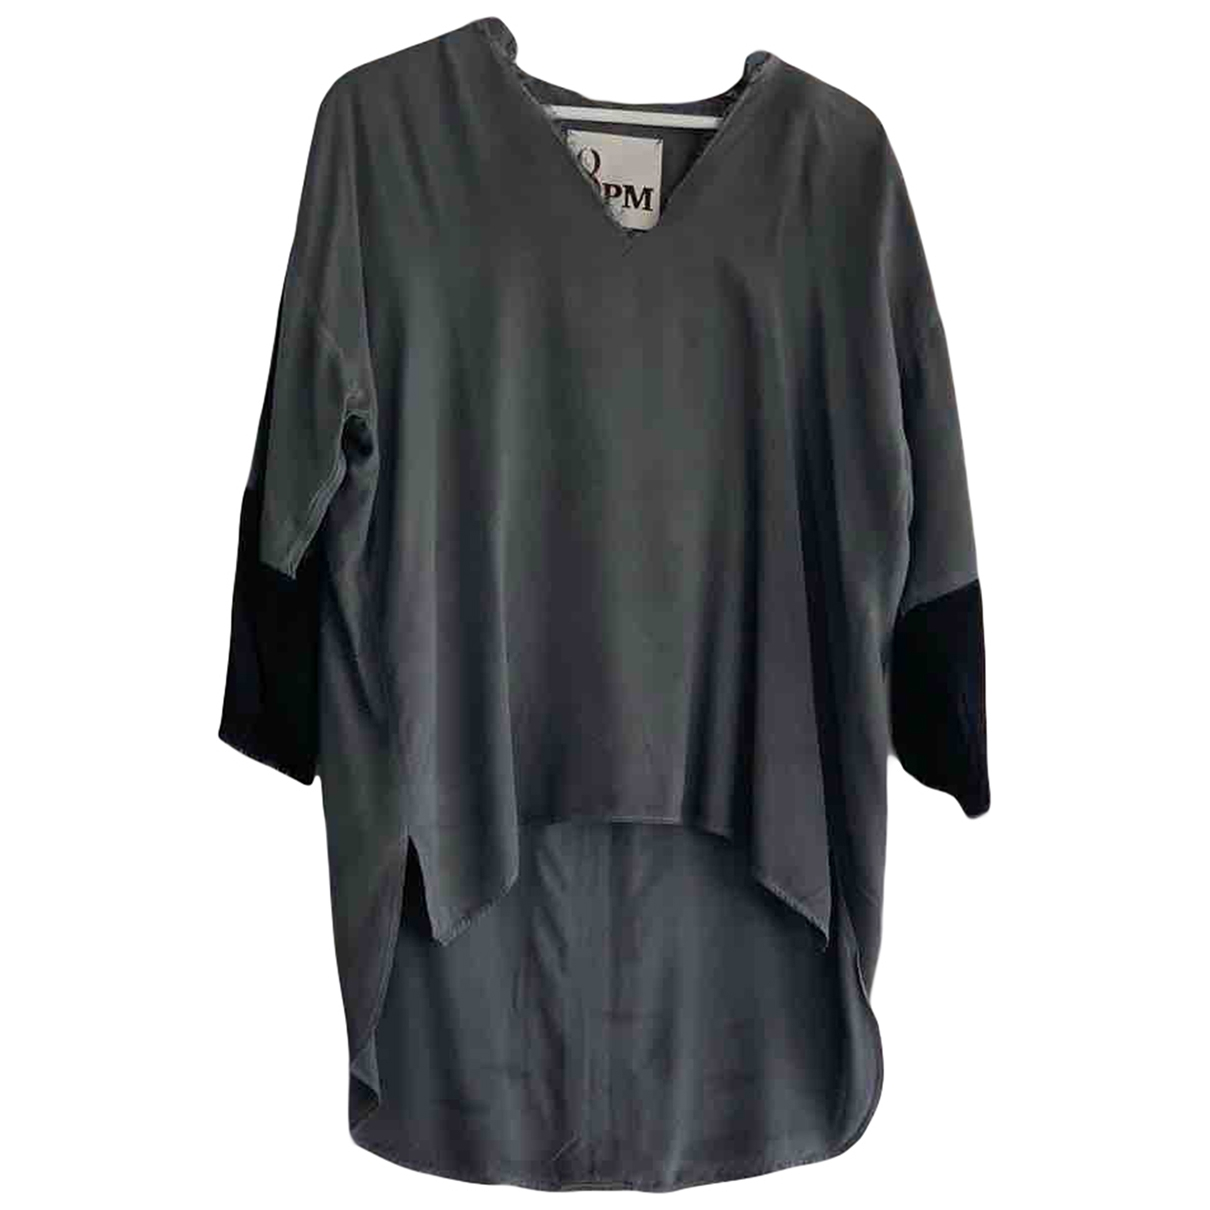 8pm - Robe   pour femme - anthracite